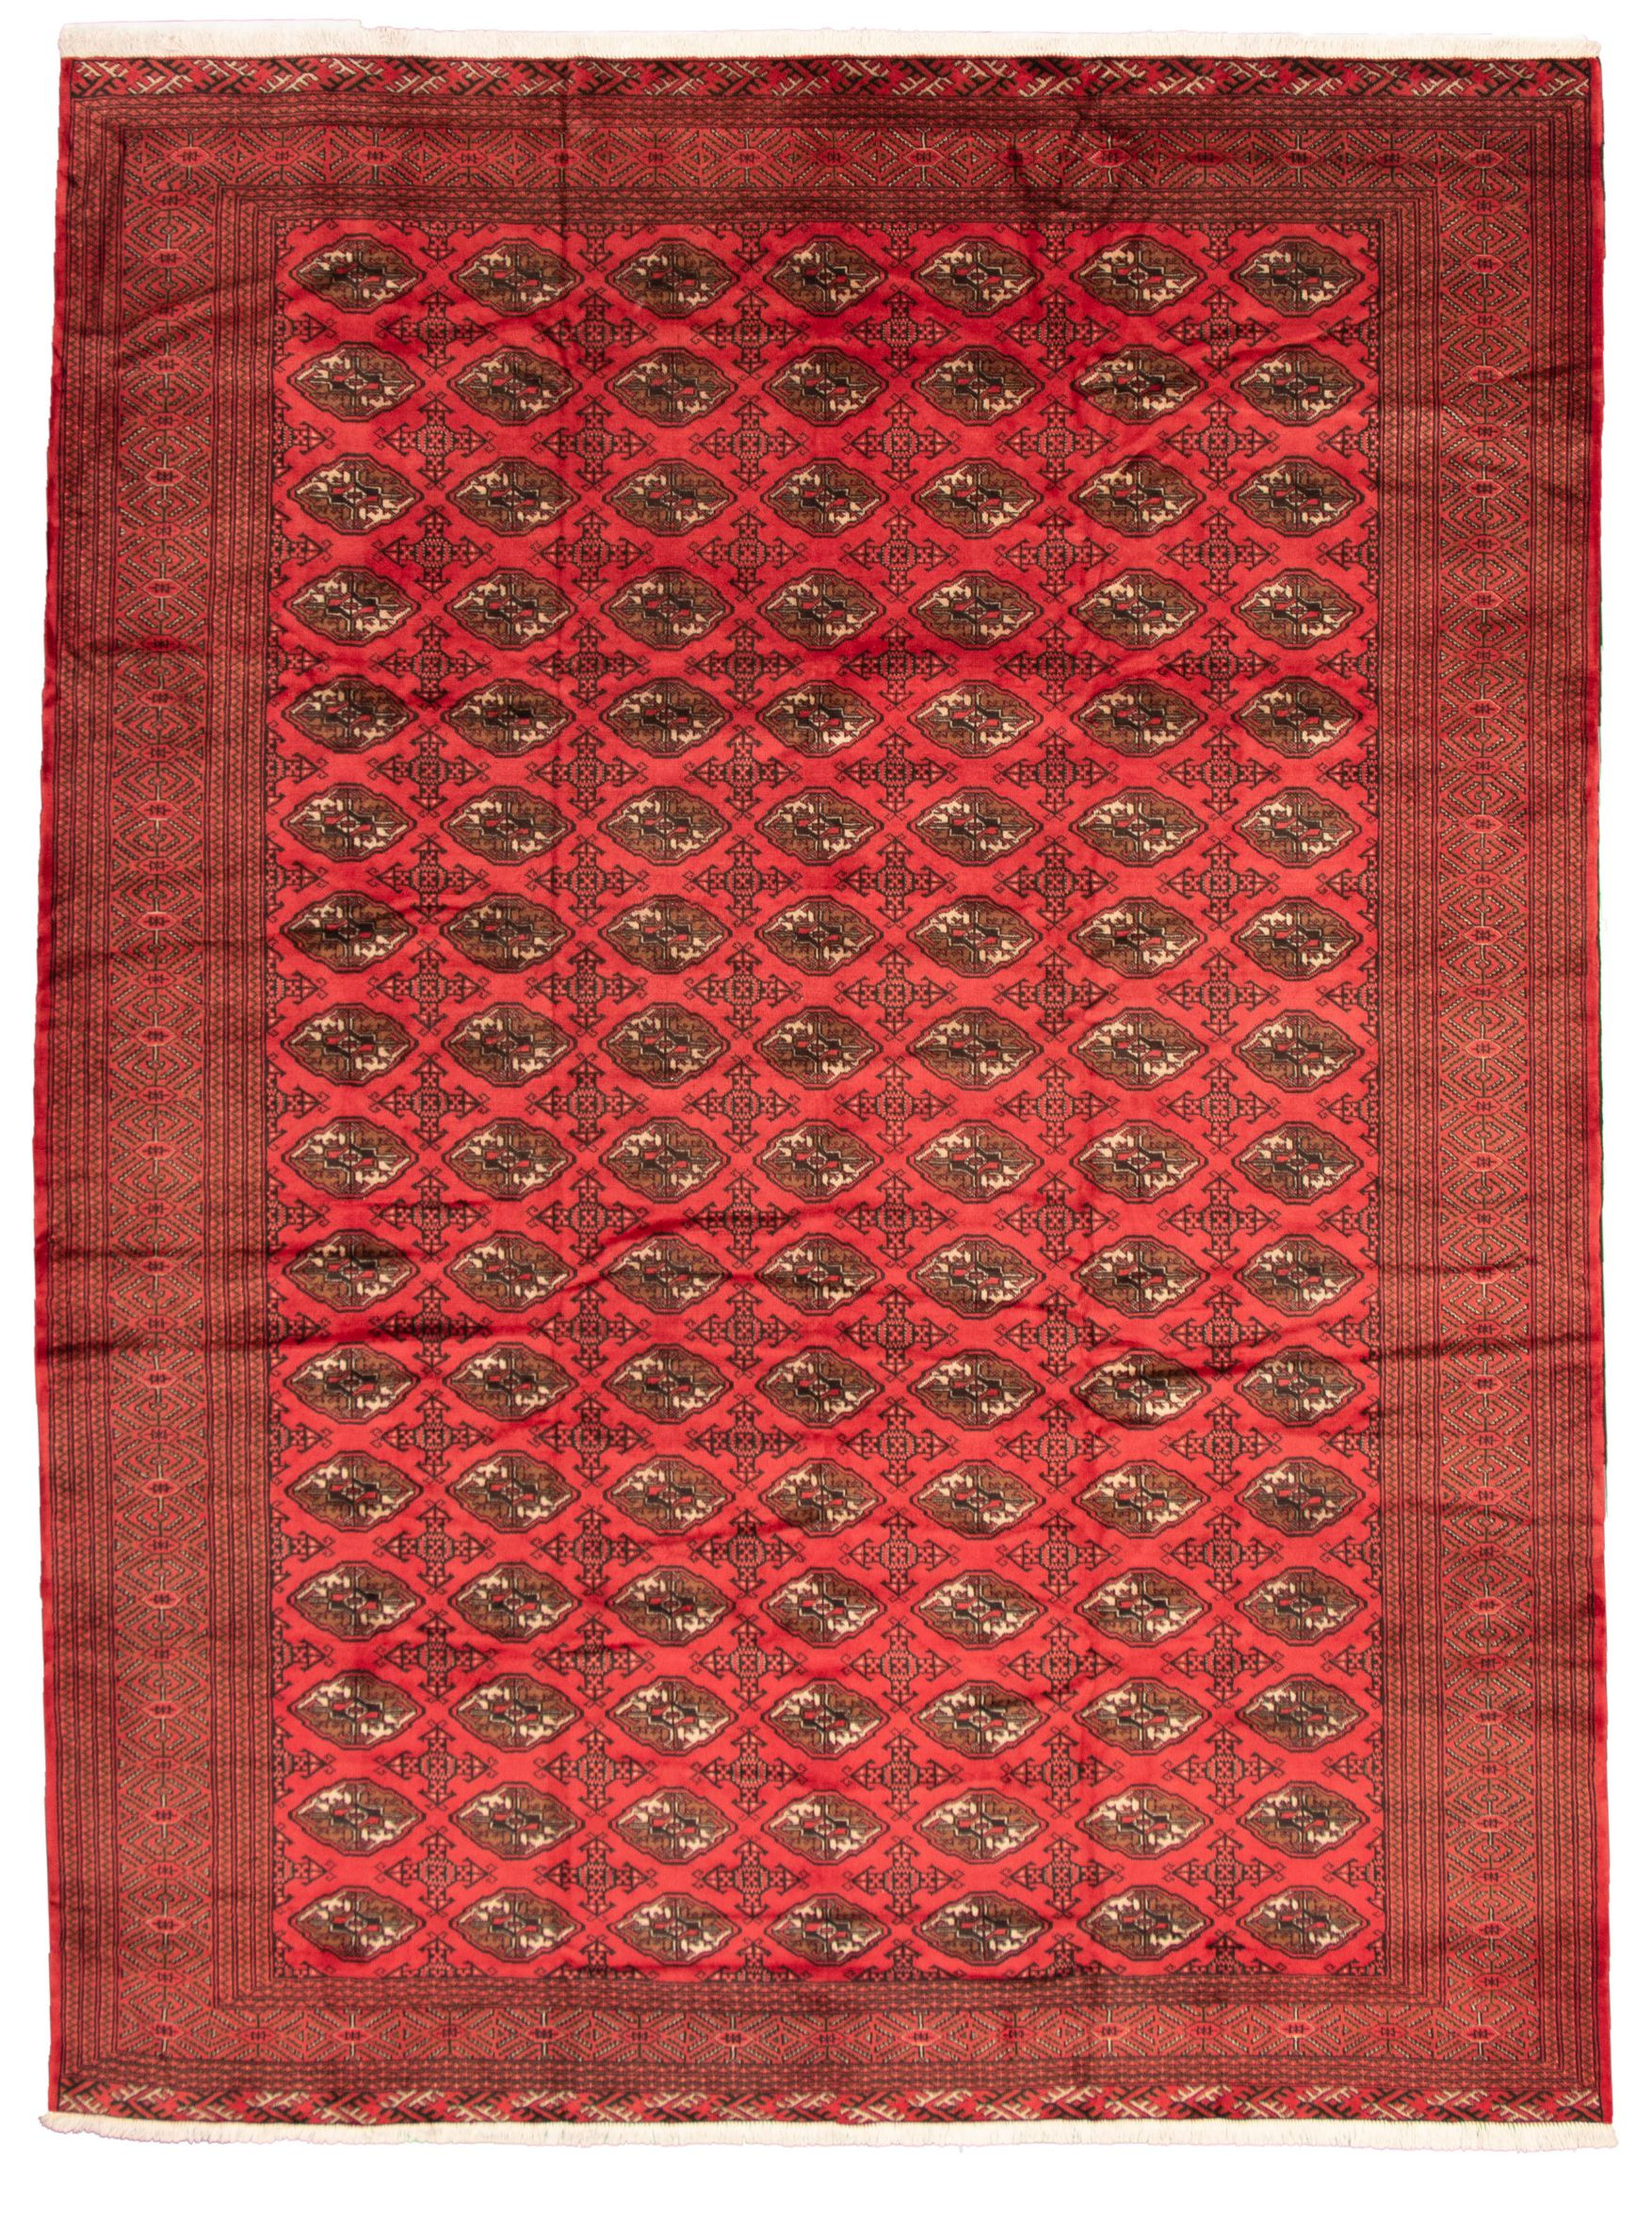 """Hand-knotted Khal Mohammadi Red Wool Rug 9'8"""" x 12'4"""" Size: 9'8"""" x 12'4"""""""